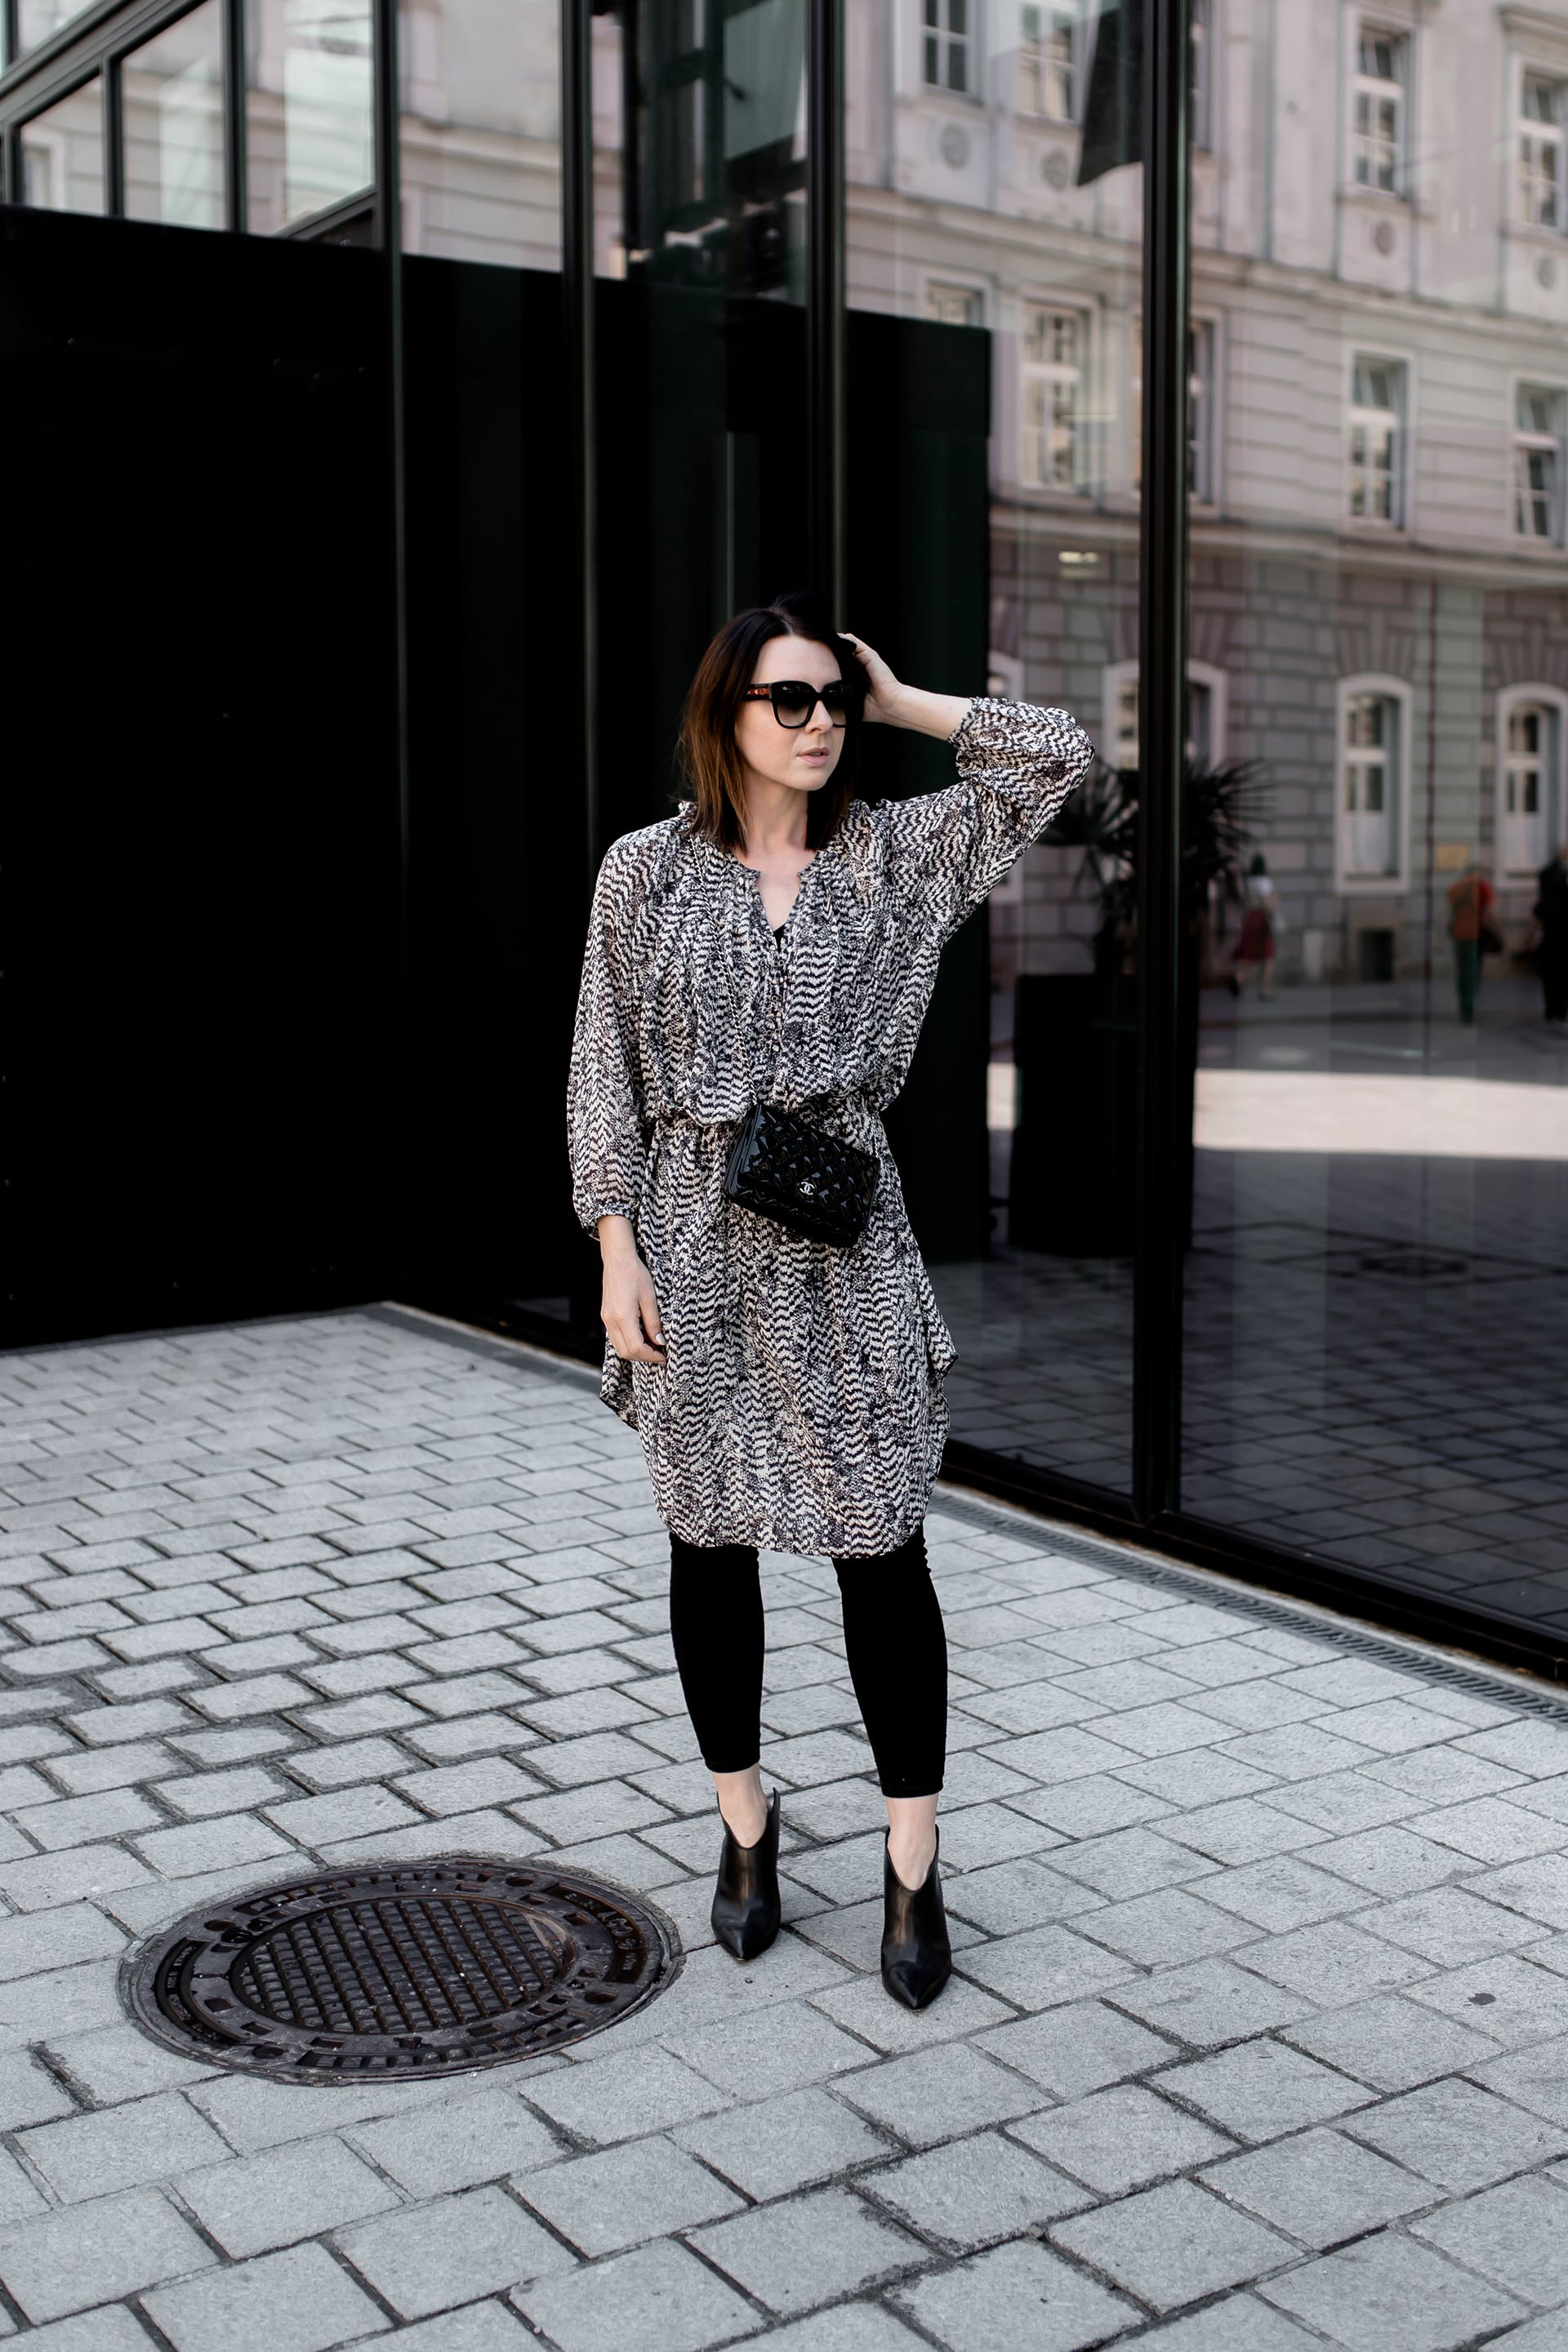 Isabel Marant pour H&M Kleid, schwarze Skinny Jeans kombinieren, Chanel Wallet on Chain Bag, Streetstyle, Frühlings Outfit mit Kleid, Modeblogger, Outfit Ideen, www.whoismocca.com